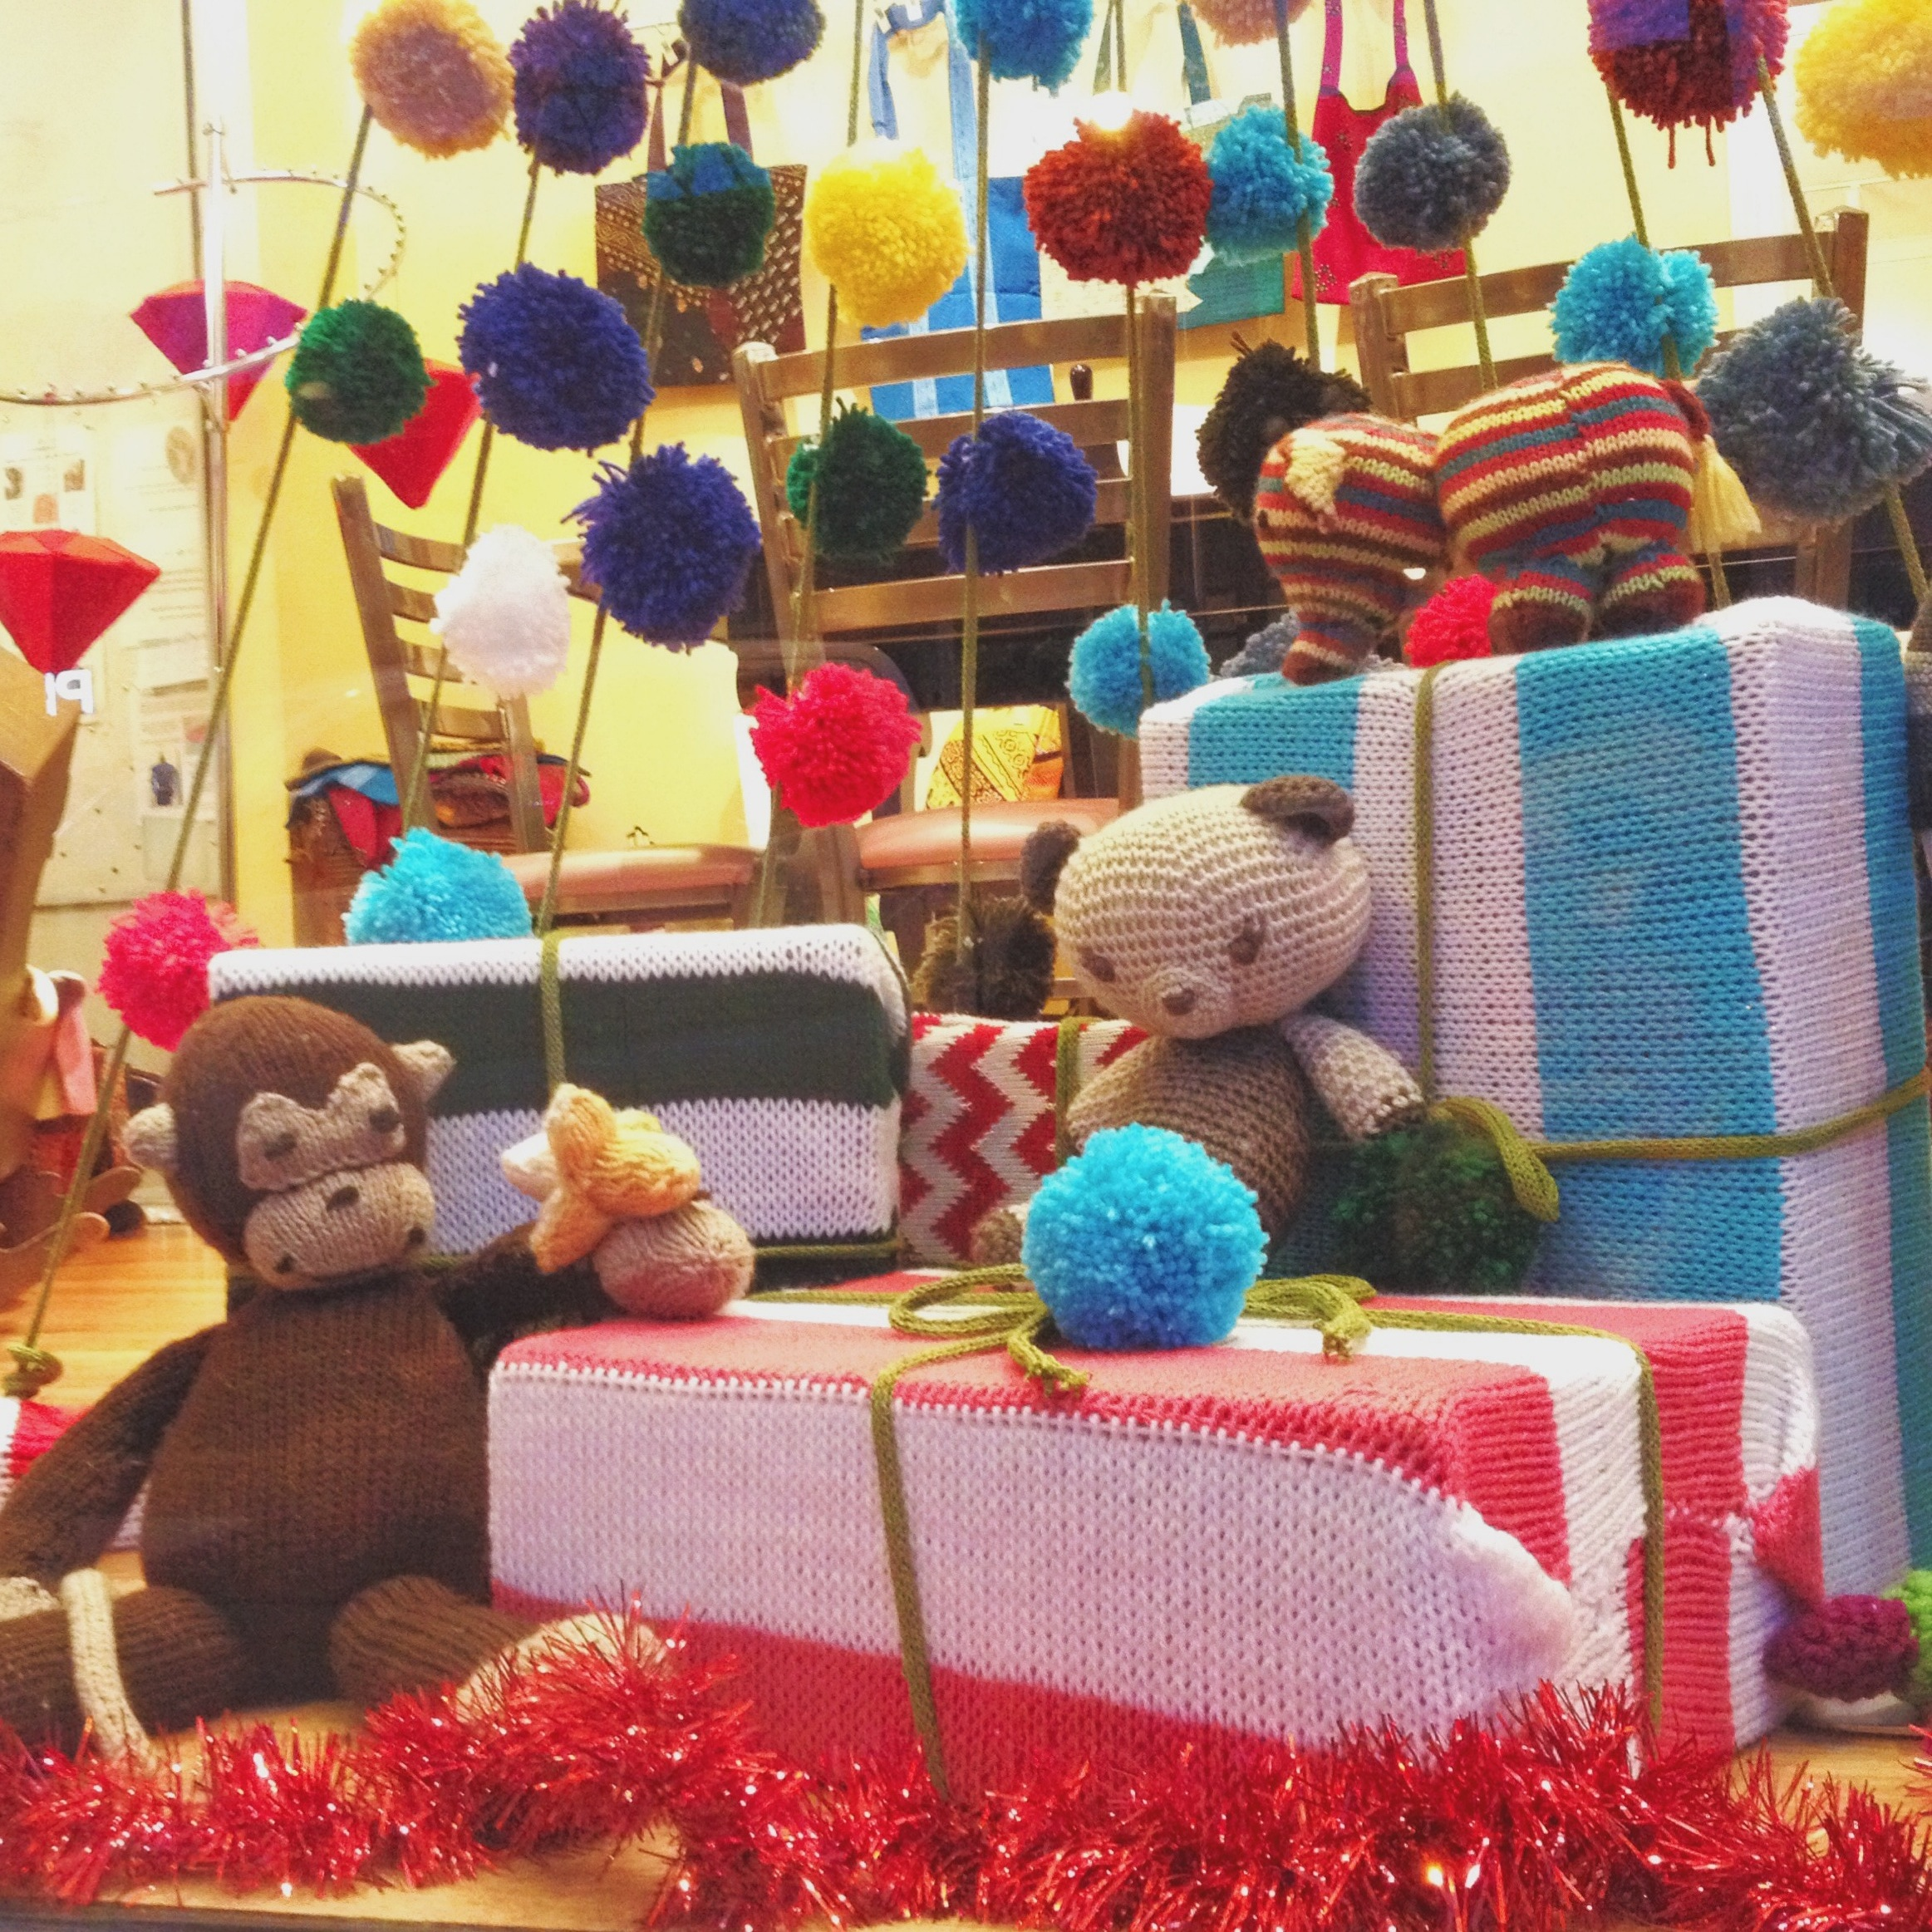 Knitting Wool Shops : We Knit a Window Display for our Local Yarn Shop KNITS FOR LIFE